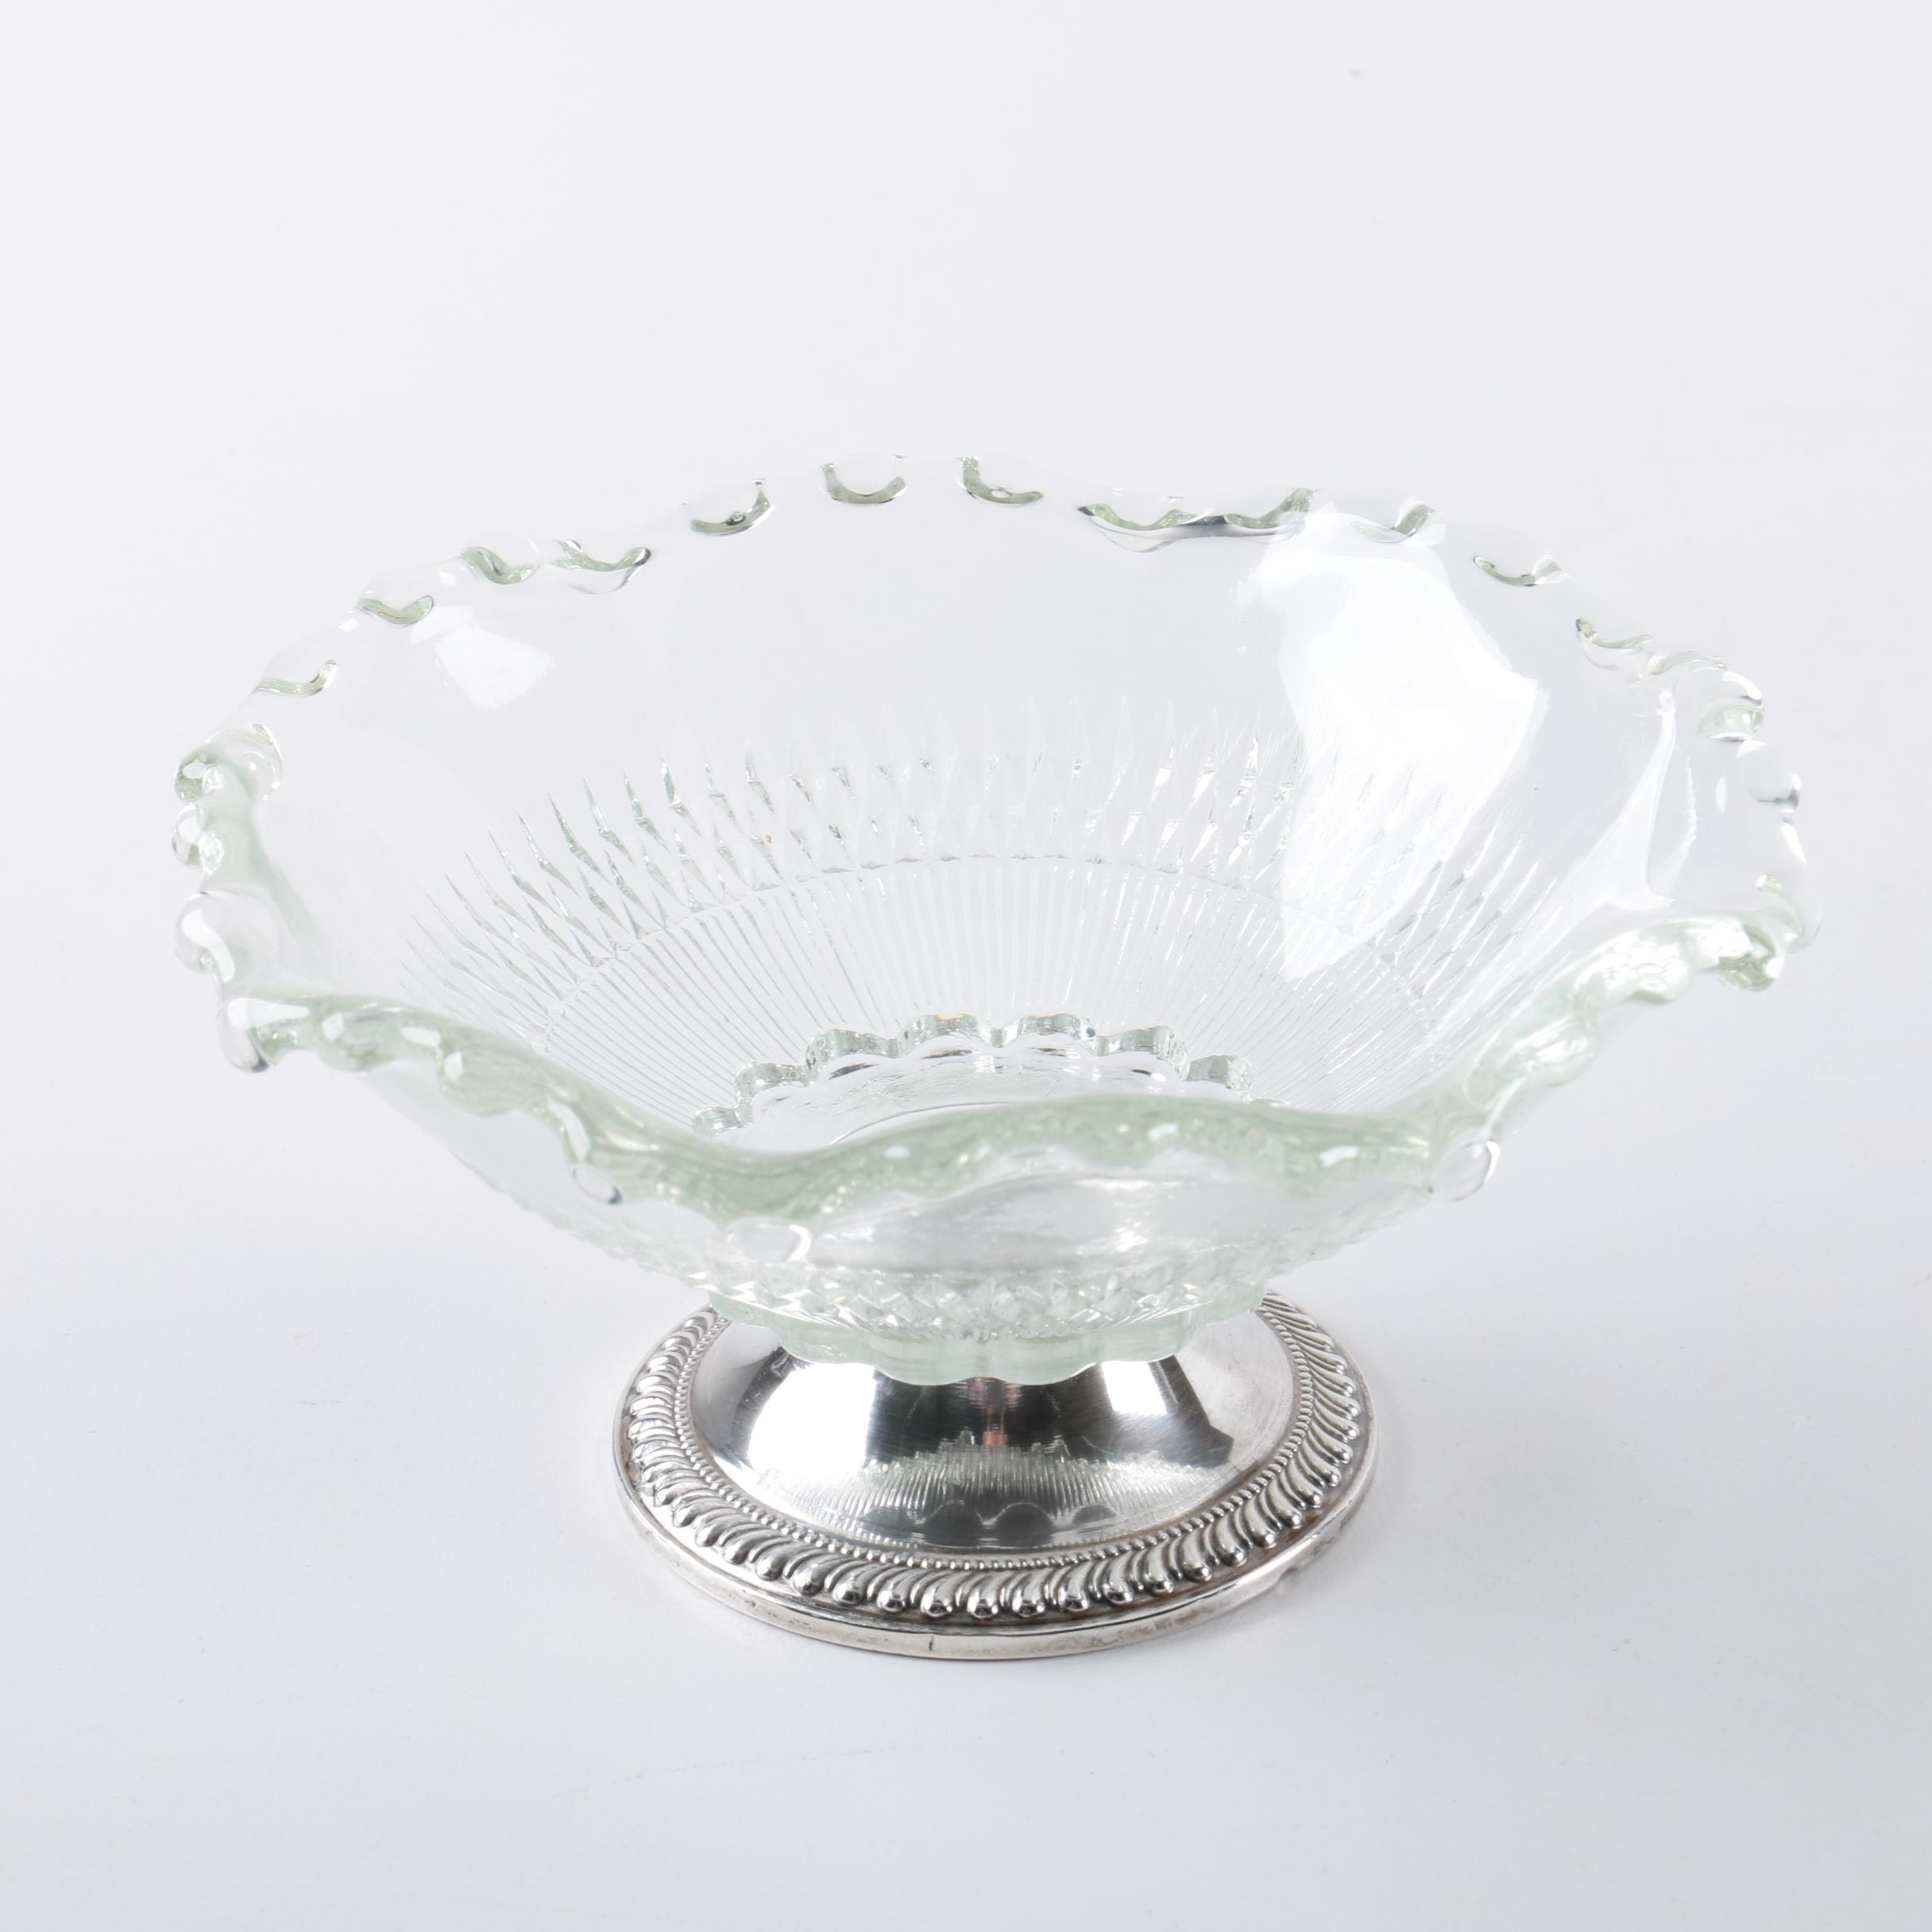 Duchin Creation Glass Bowl with Weighted Sterling Base